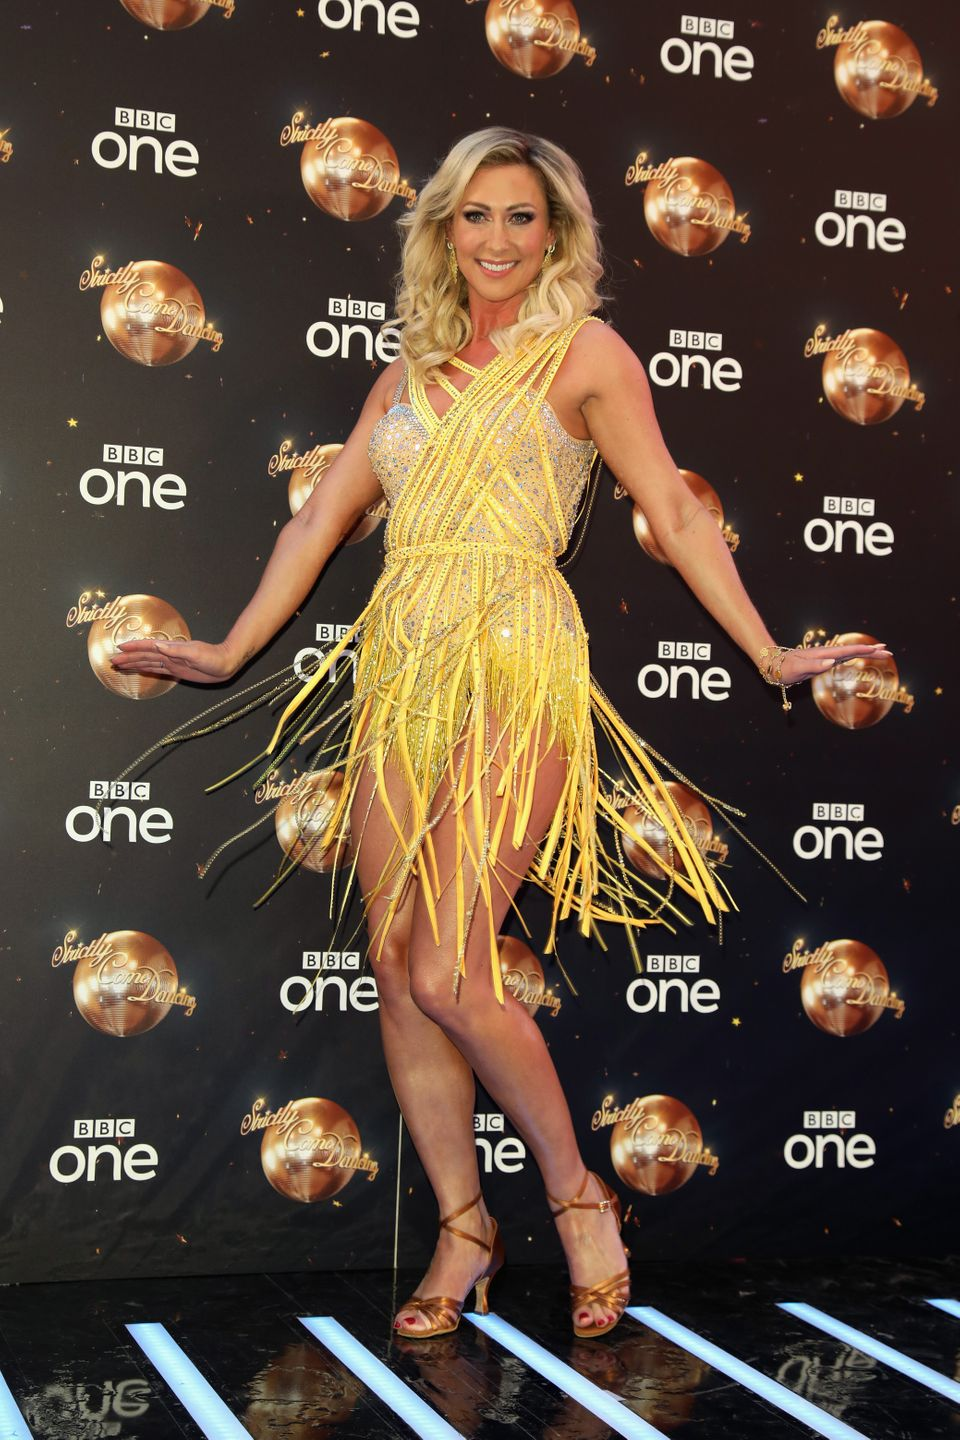 Faye took part in Strictly in